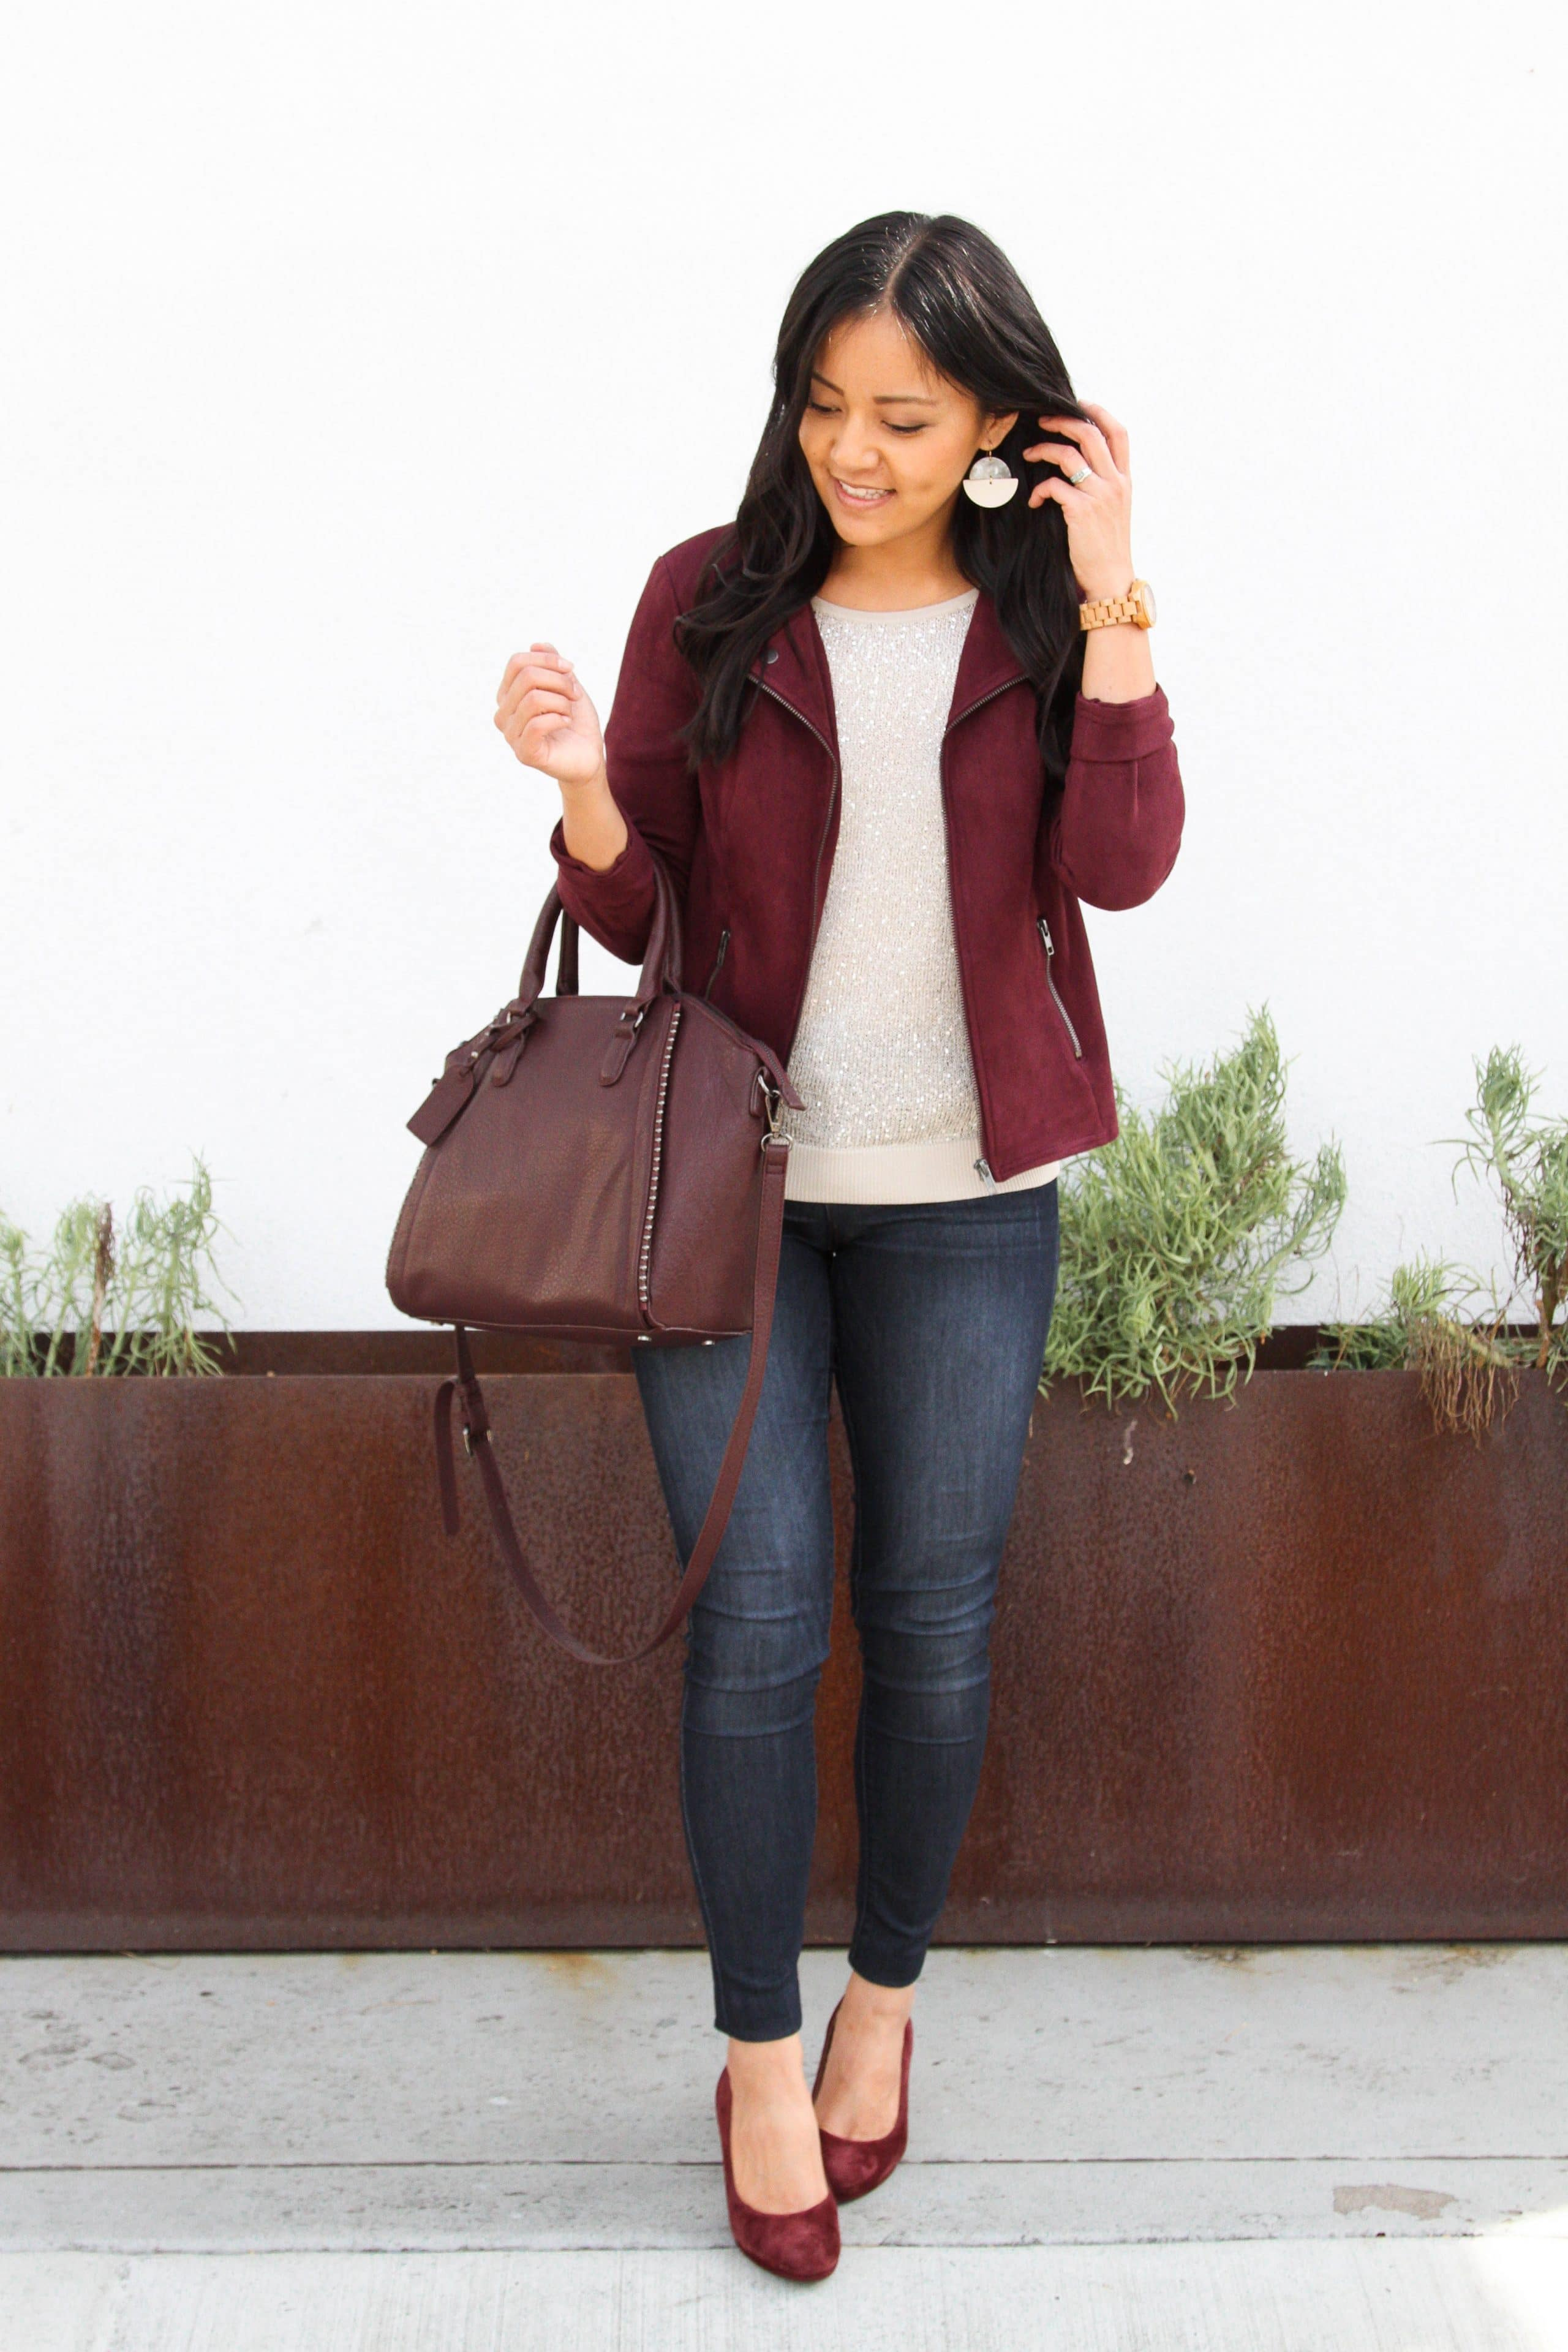 cream sequin top + maroon moto jacket + skinny jeans + maroon heels + maroon bag